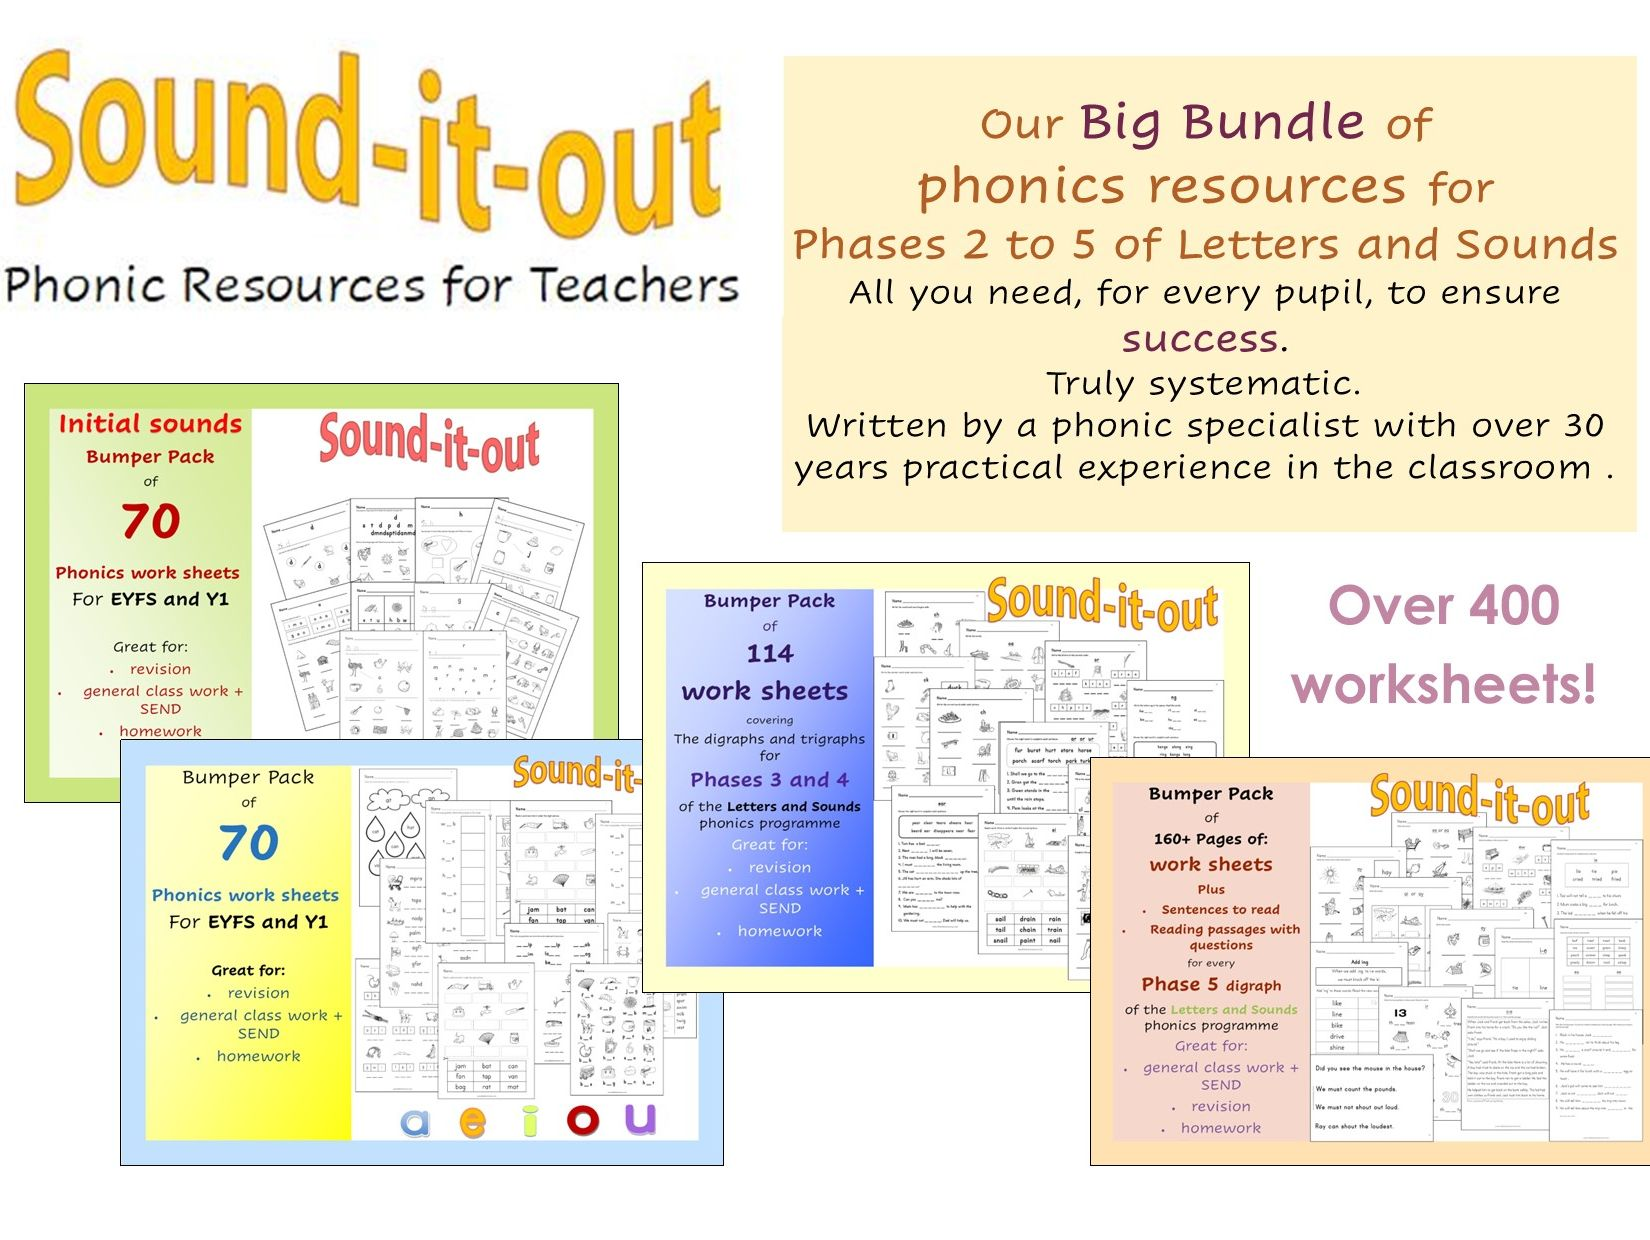 Big Bundle of phonics resources for Letters and Sounds